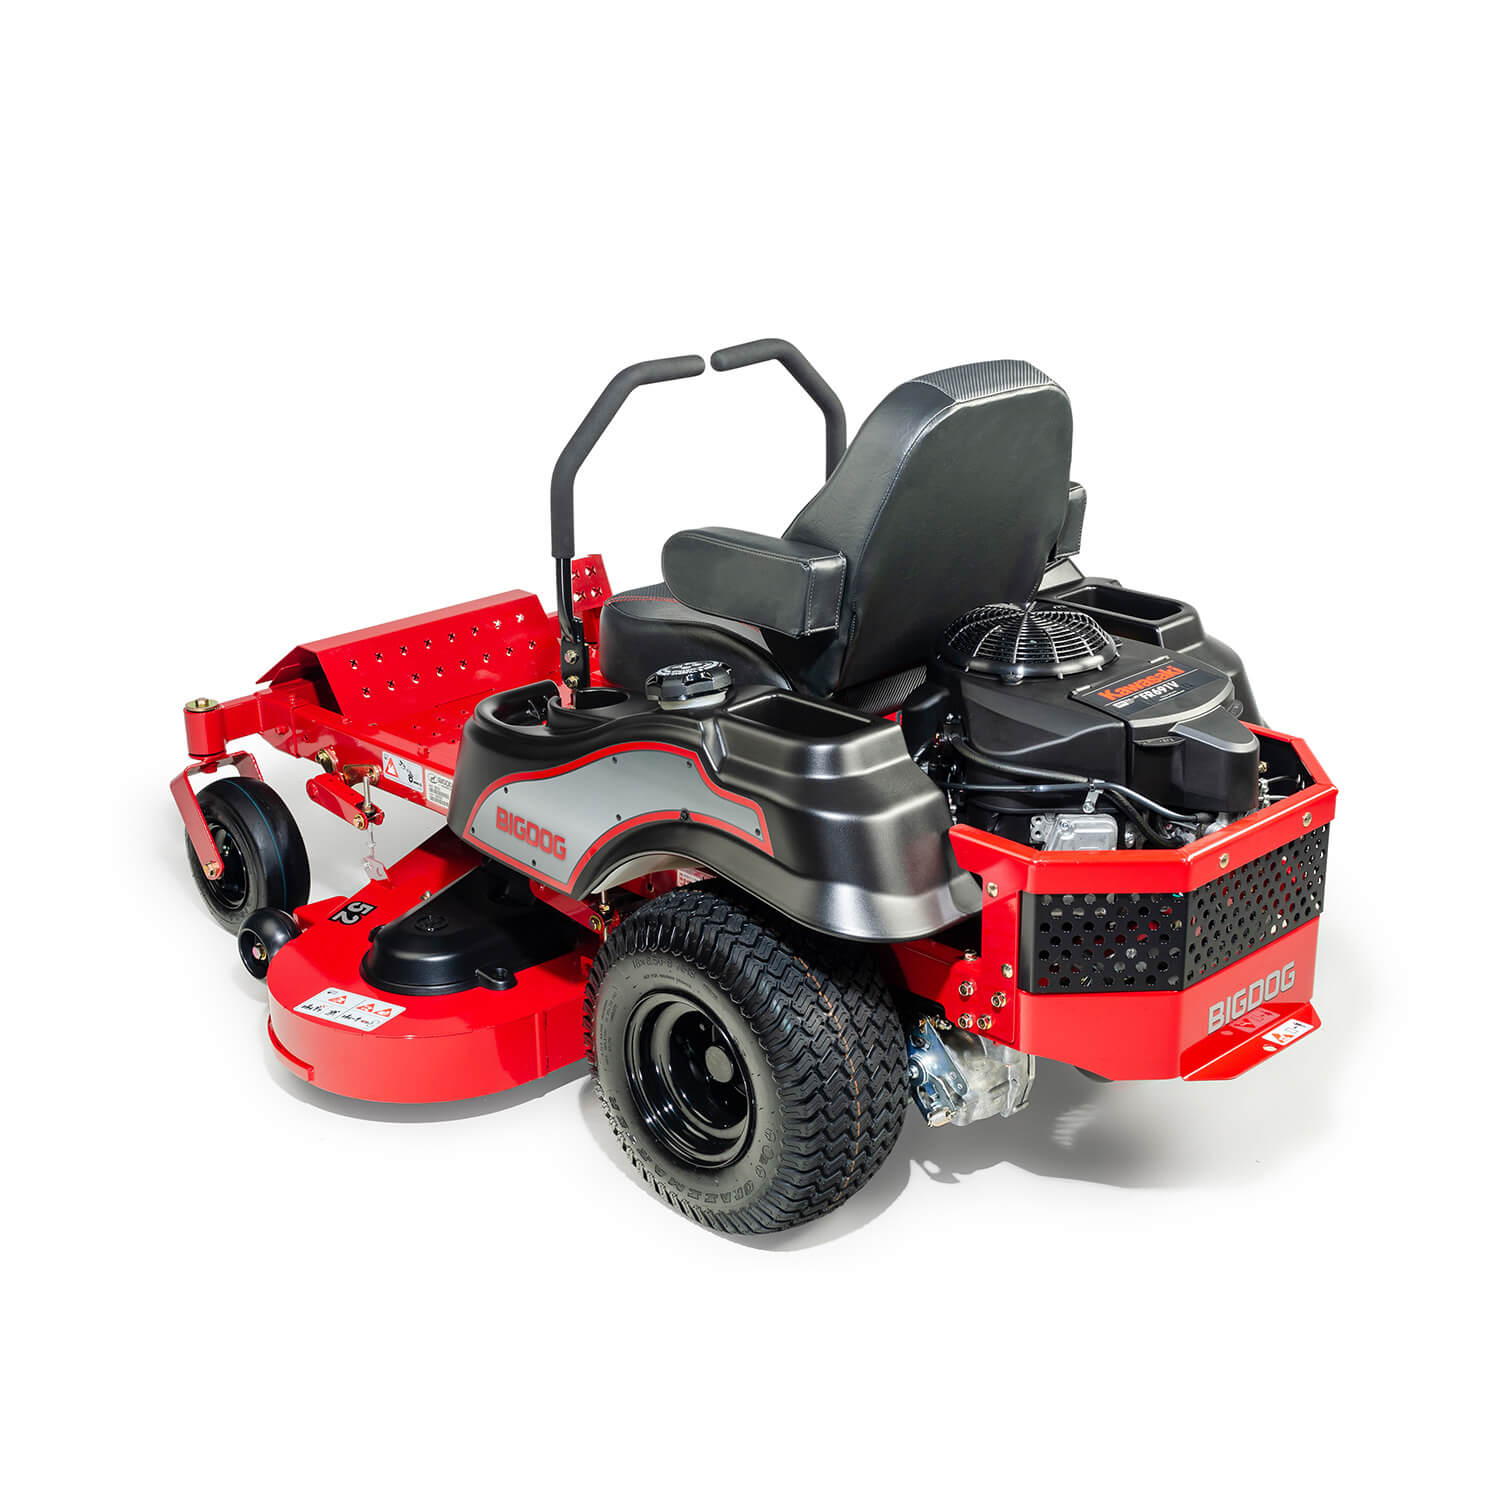 Image of the rear three quarters of a red BigDog mower